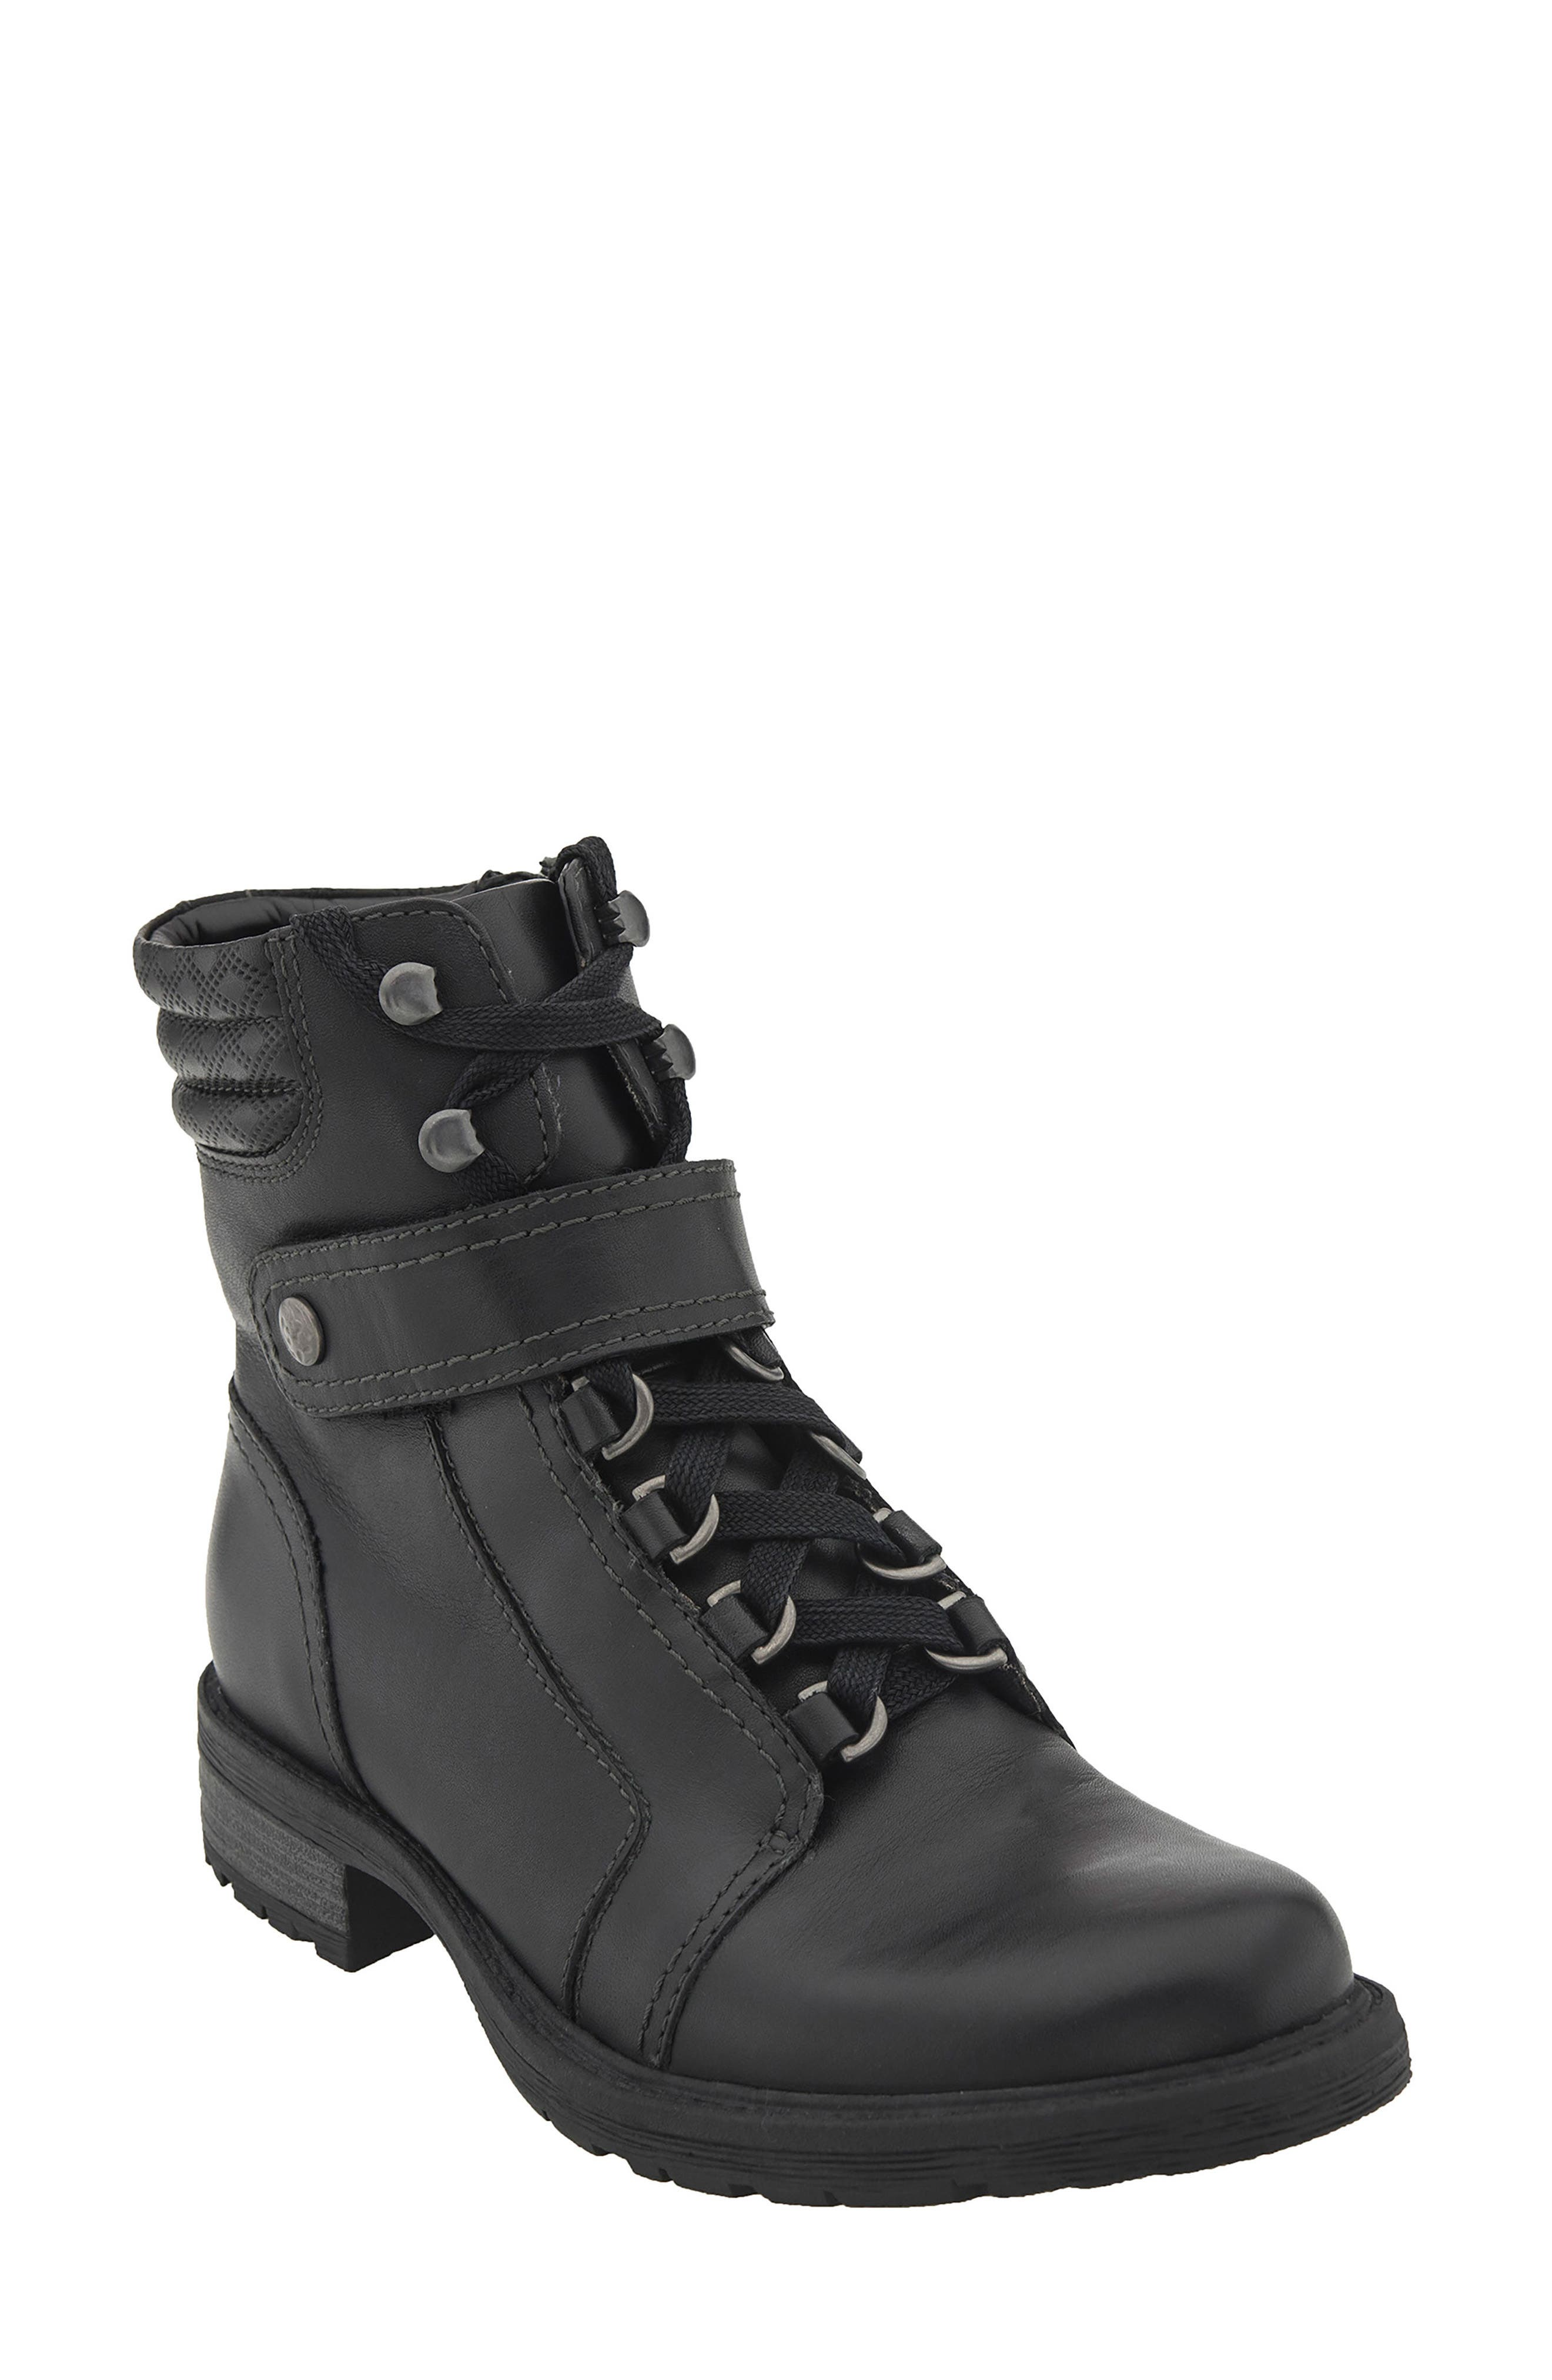 Everest Lace-Up Boot,                             Main thumbnail 1, color,                             Black Leather